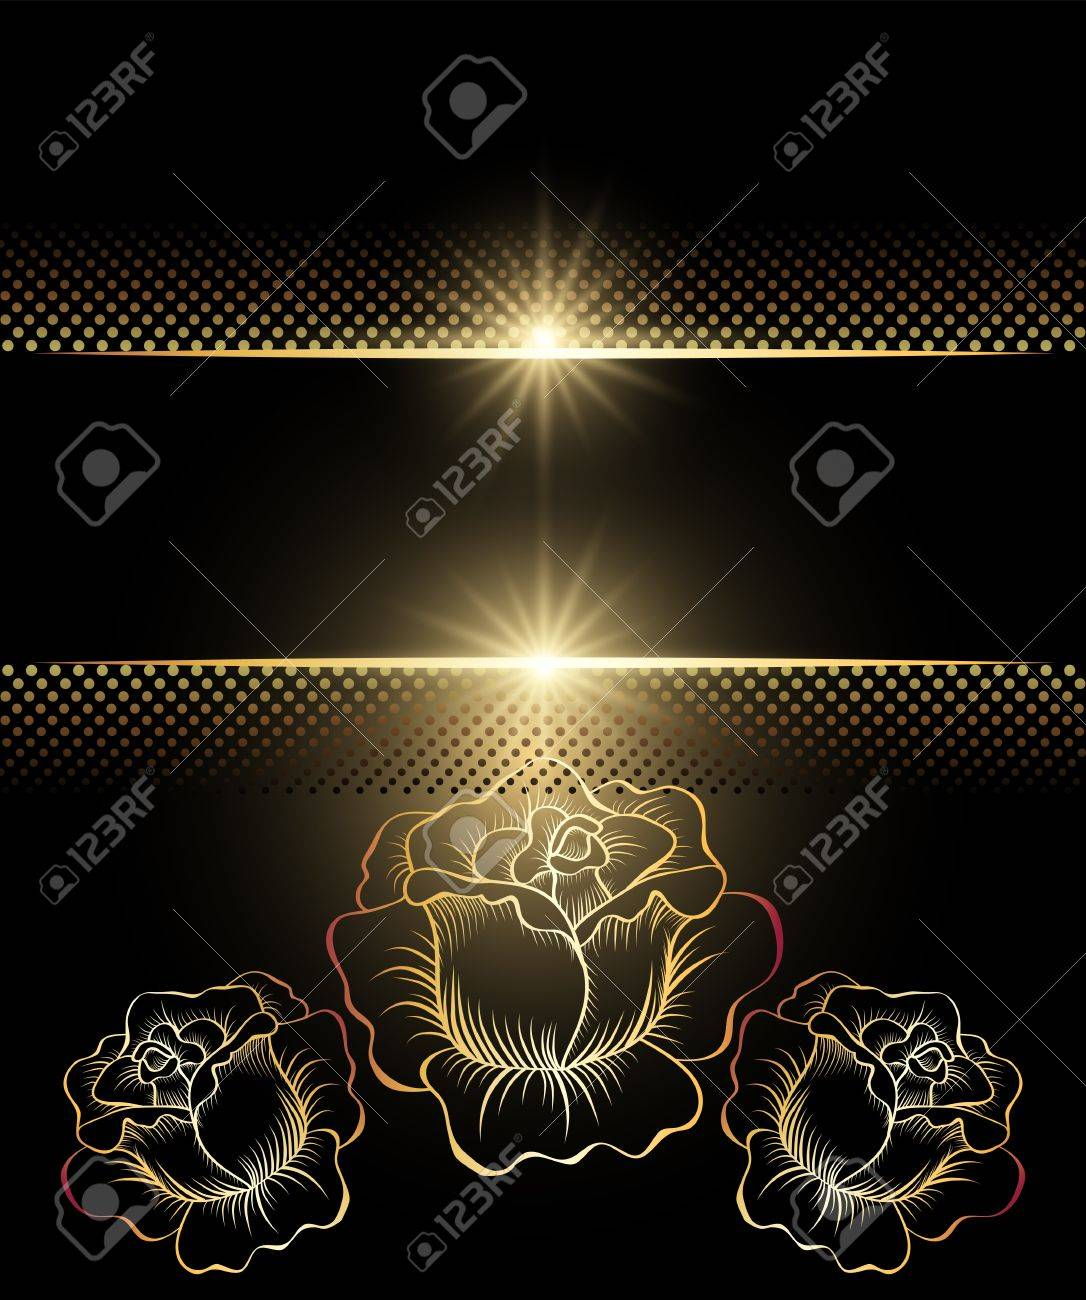 Background with golden ornament for various design artwork Stock Vector - 10343150